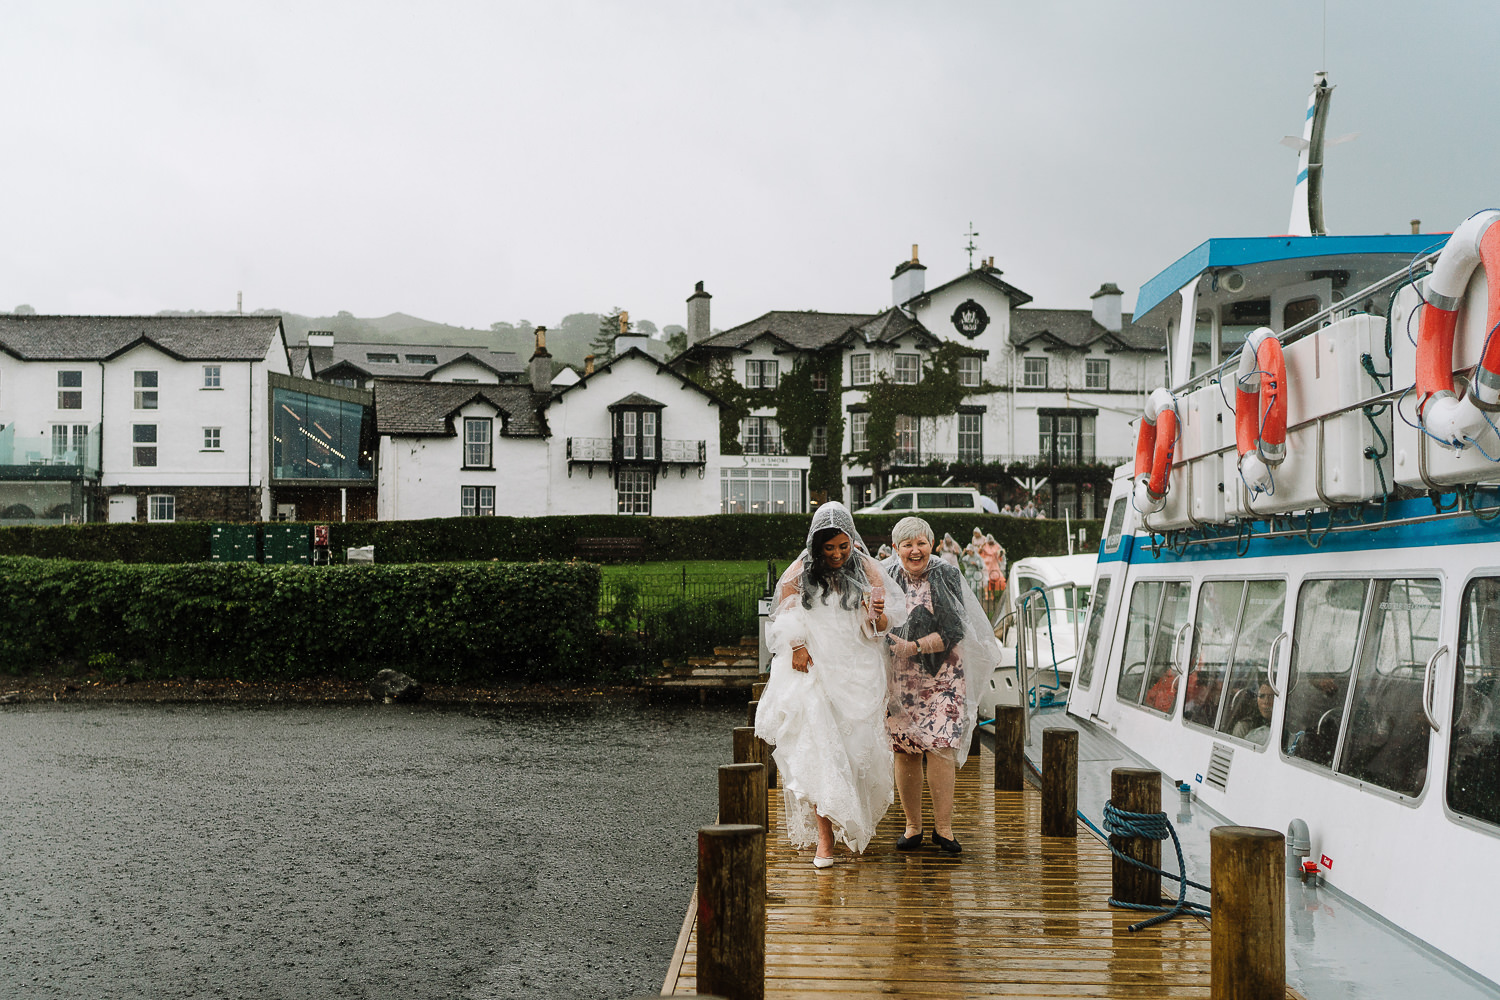 Guests getting on boat in rain on the jetty at Low Wood Bay